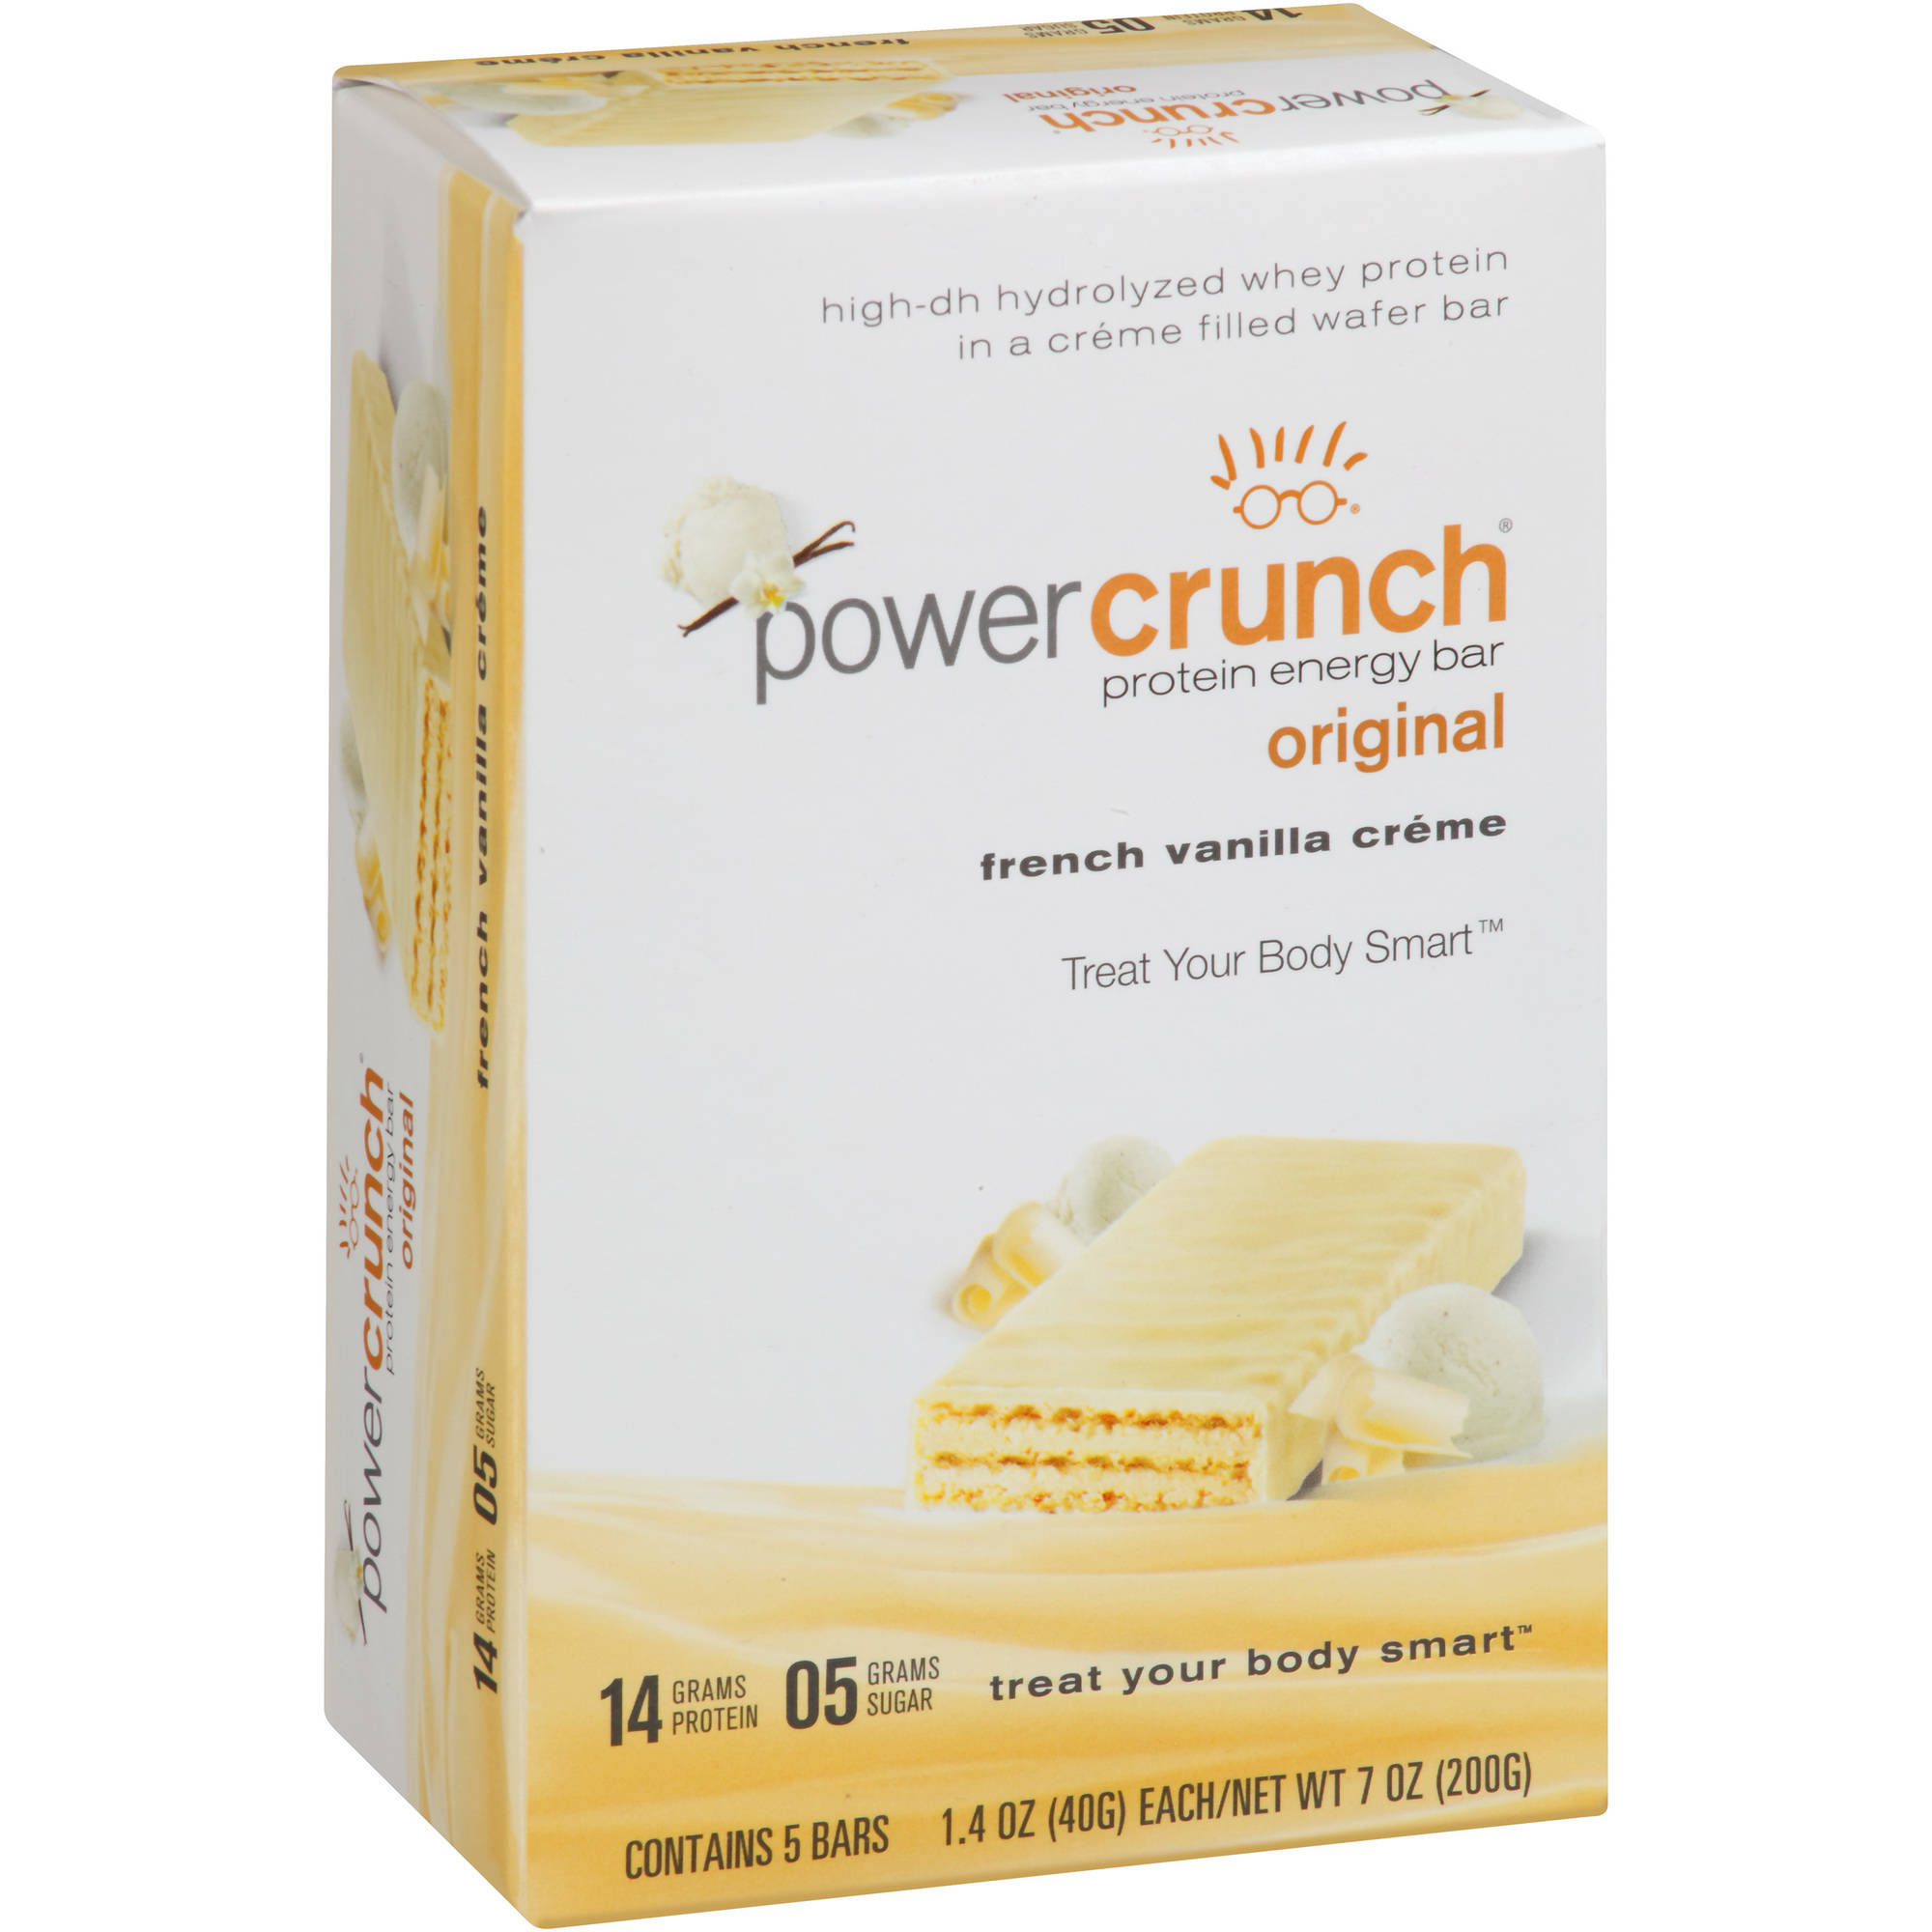 Power Crunch Original French Vanilla Creme Protein Energy Bars, 1.4 oz, 5 count